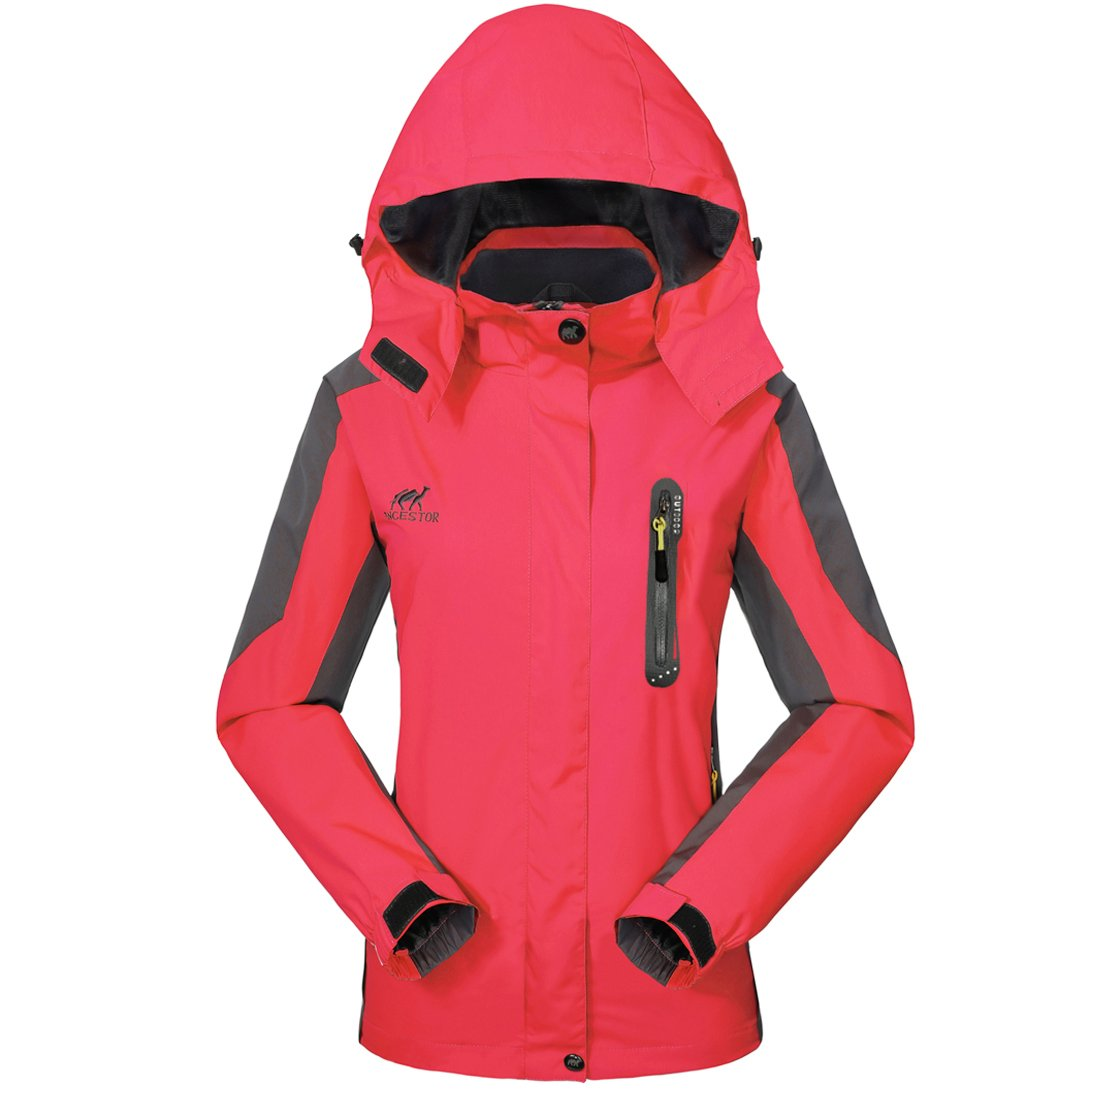 GIVBRO Waterproof Jacket Womens Rain Jacket -[UPGRADED 2018] Raincoat Ladies Outdoor Hooded Softshell Camping Hiking Mountaineer Running Jackets